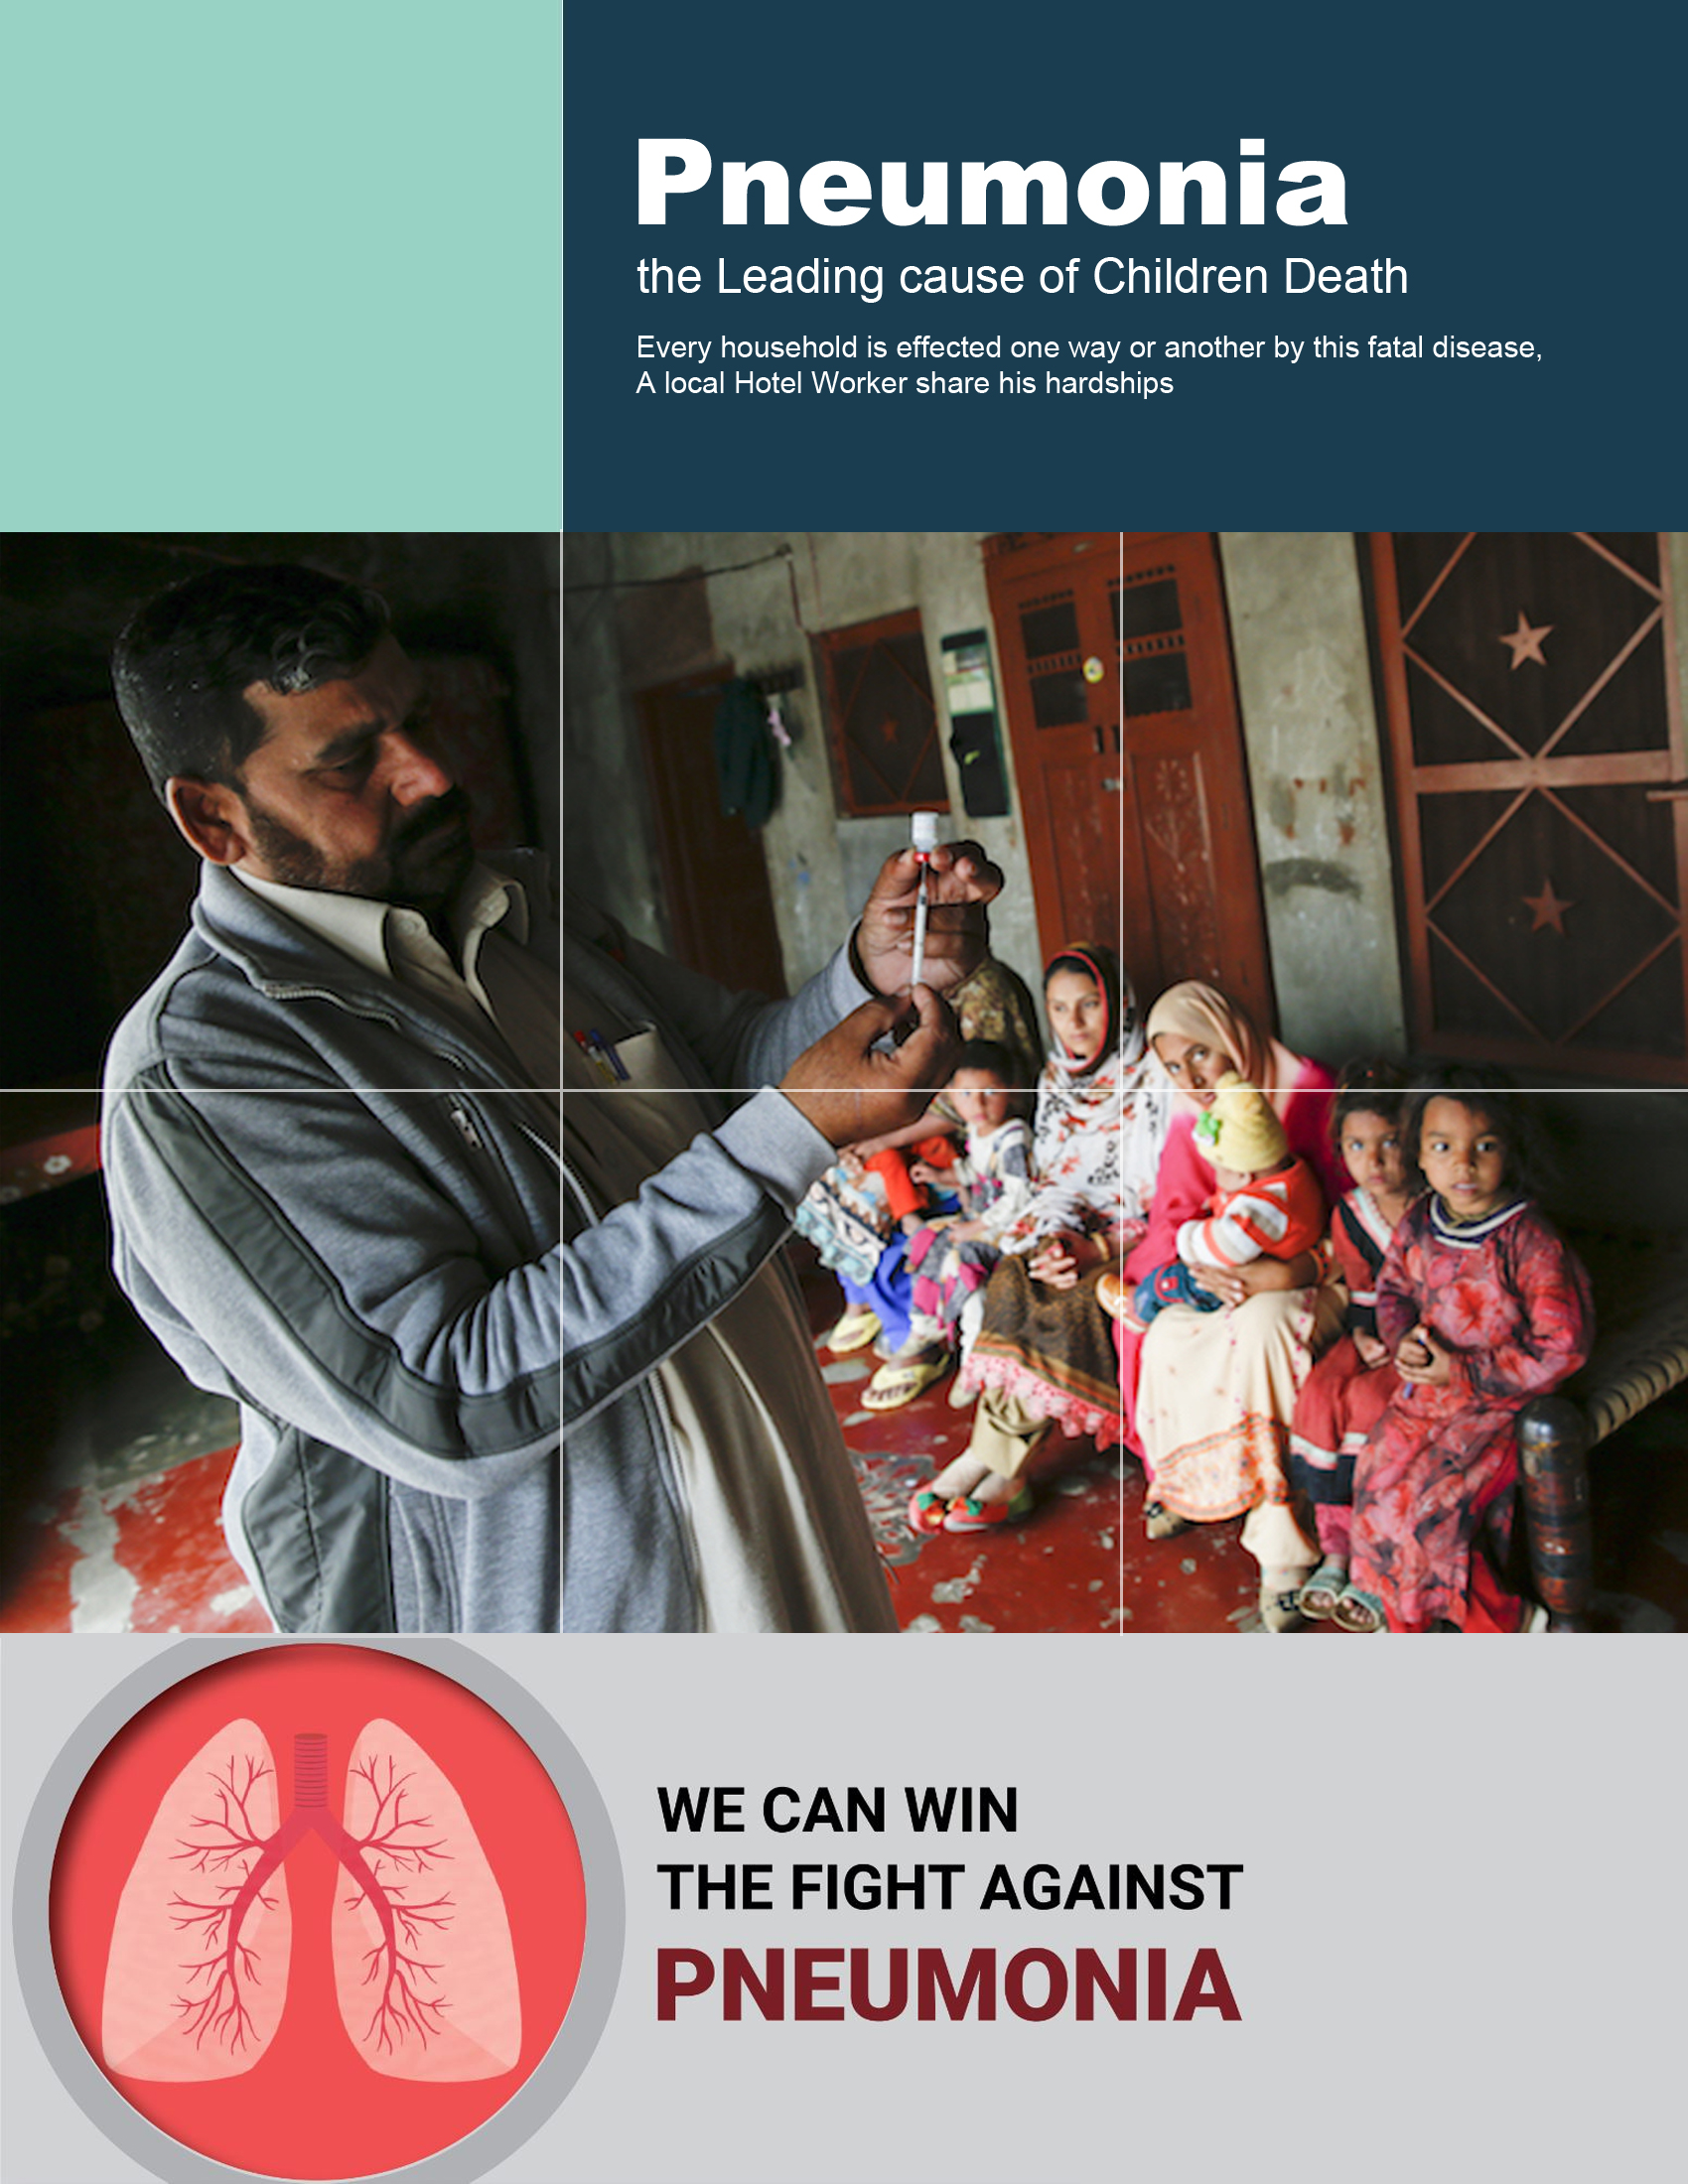 Pneumonia, the Leading cause of Children Death